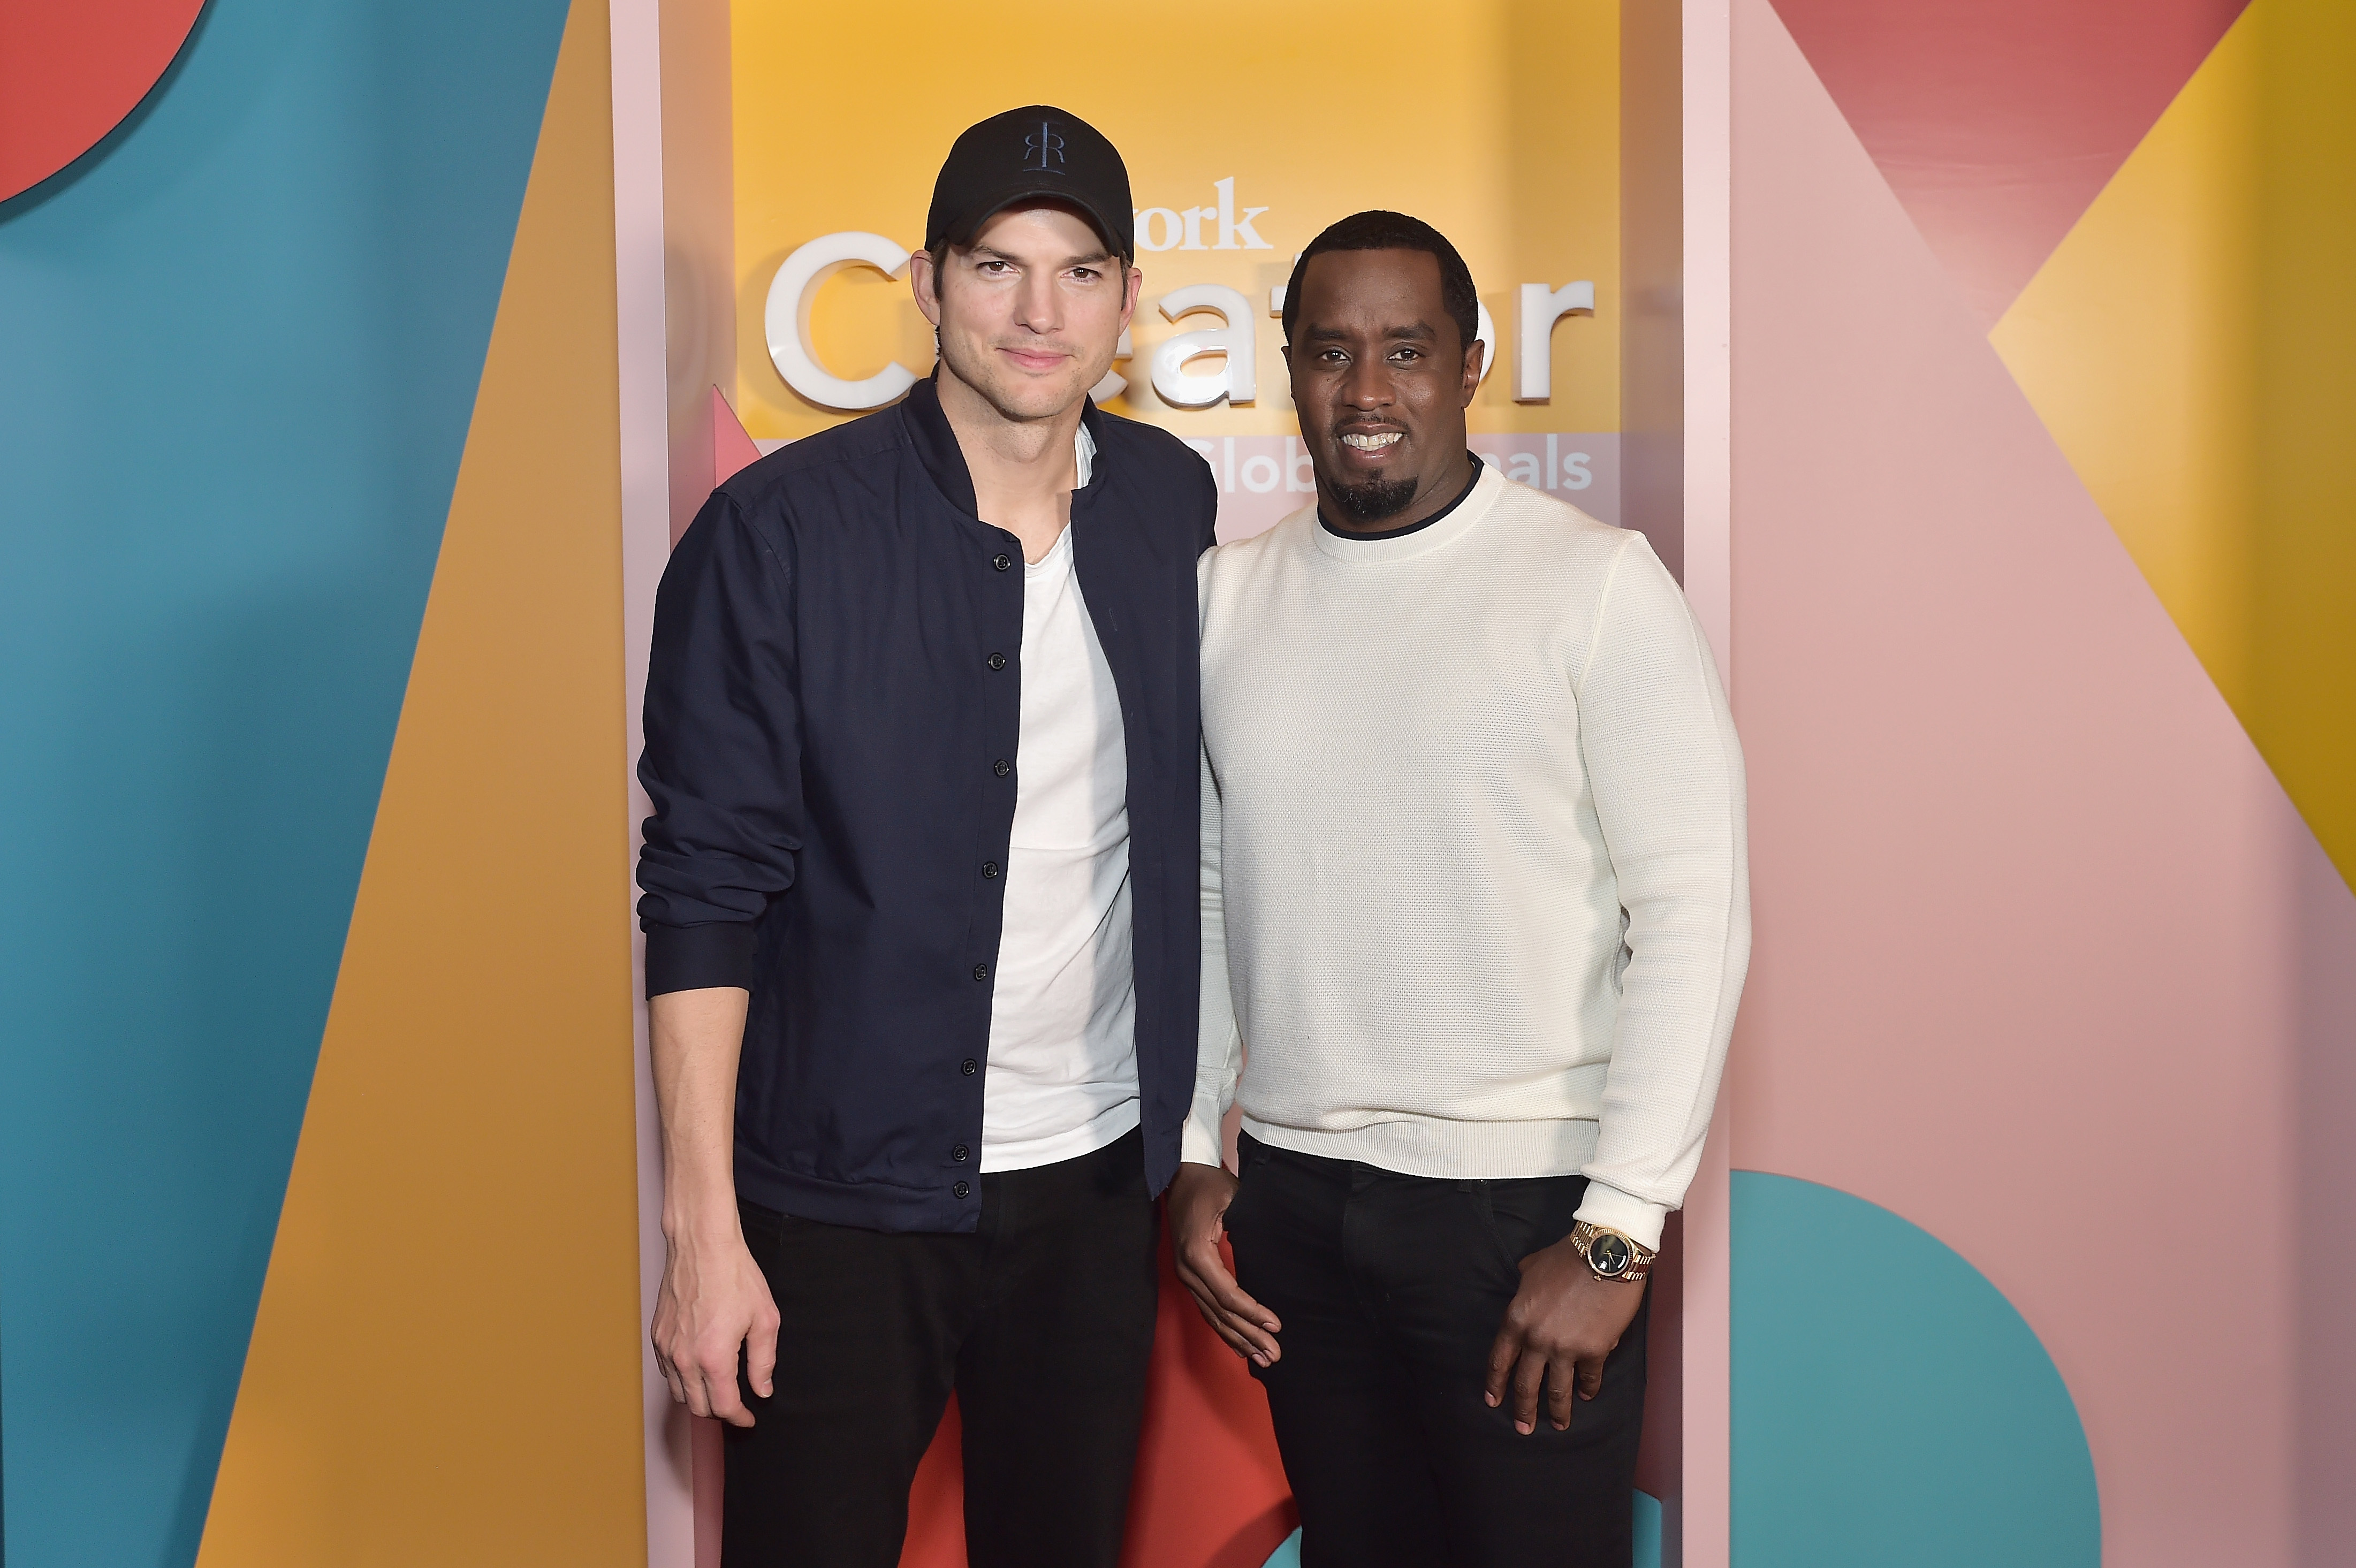 Ashton Kutcher and Sean Combs attend WeWork Presents Second Annual Creator Global Finals at Microsoft Theater in Los Angeles on Jan. 9, 2019.